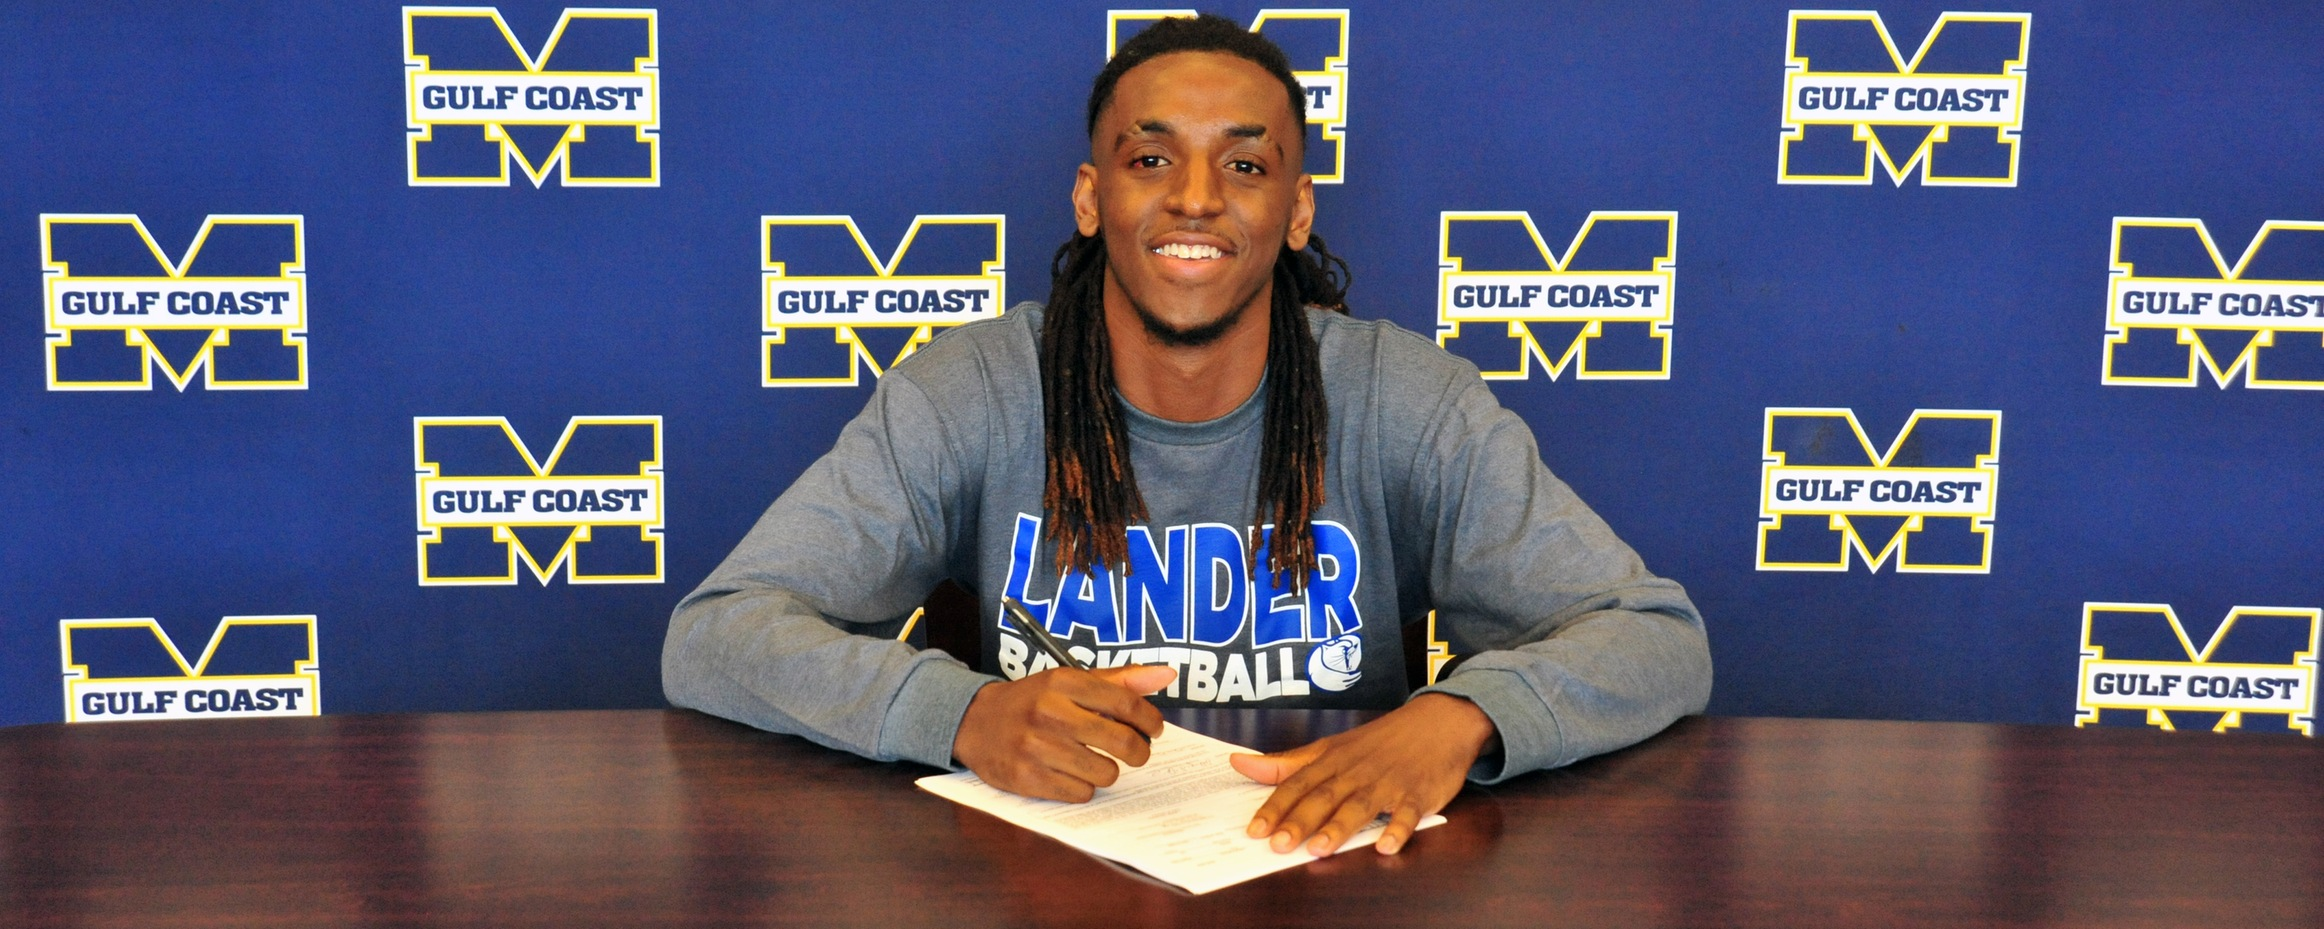 Spivery signs with Lander